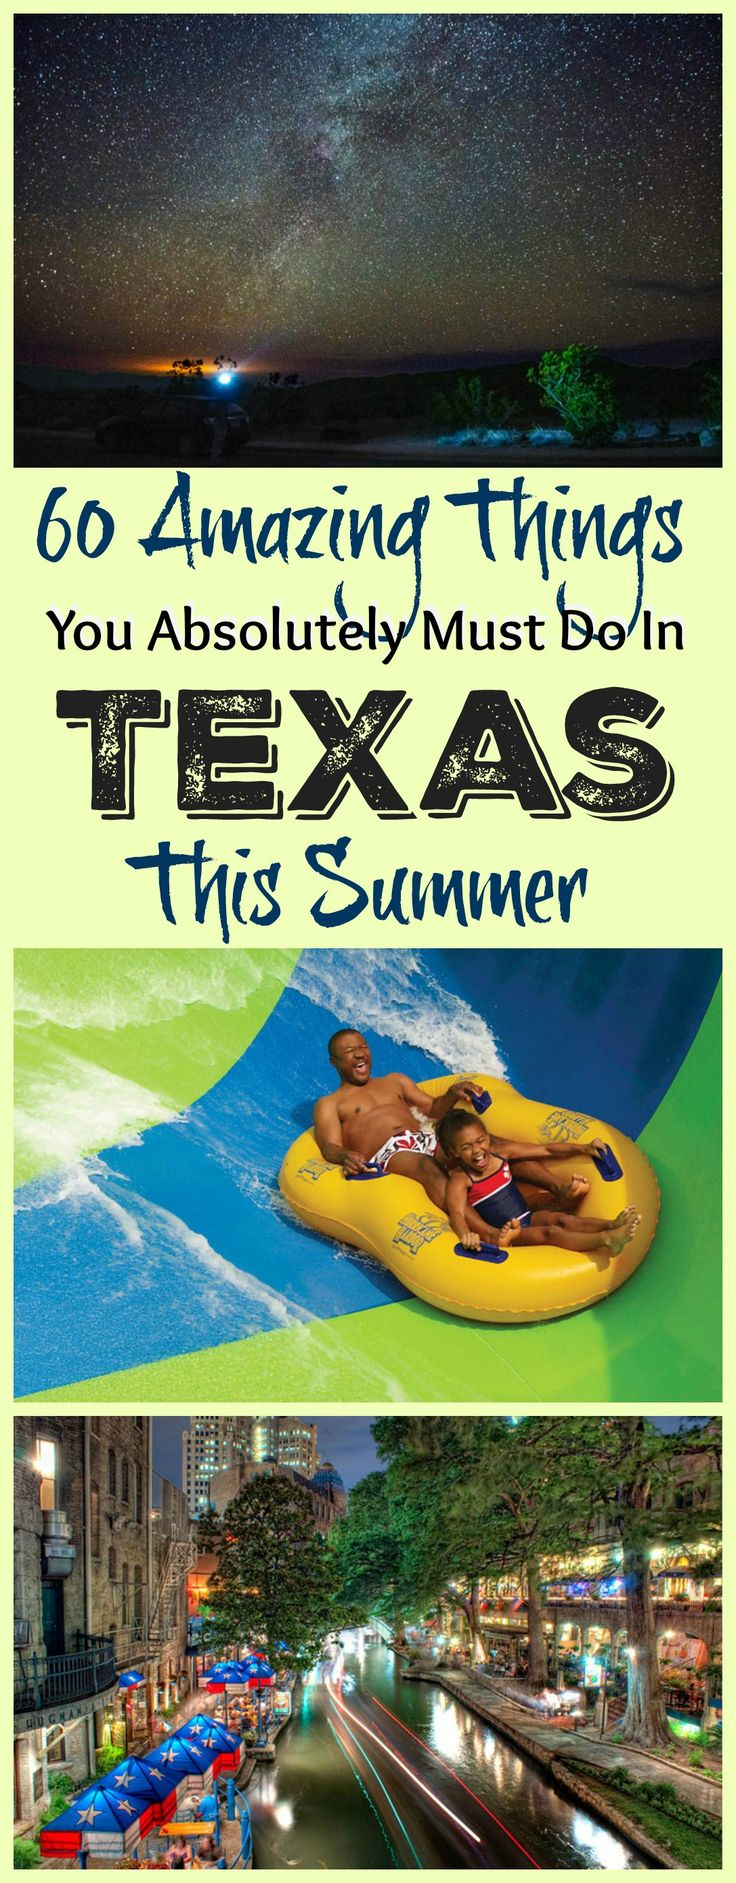 Travel from the piney forests of east texas to the mountain deserts of west texas and